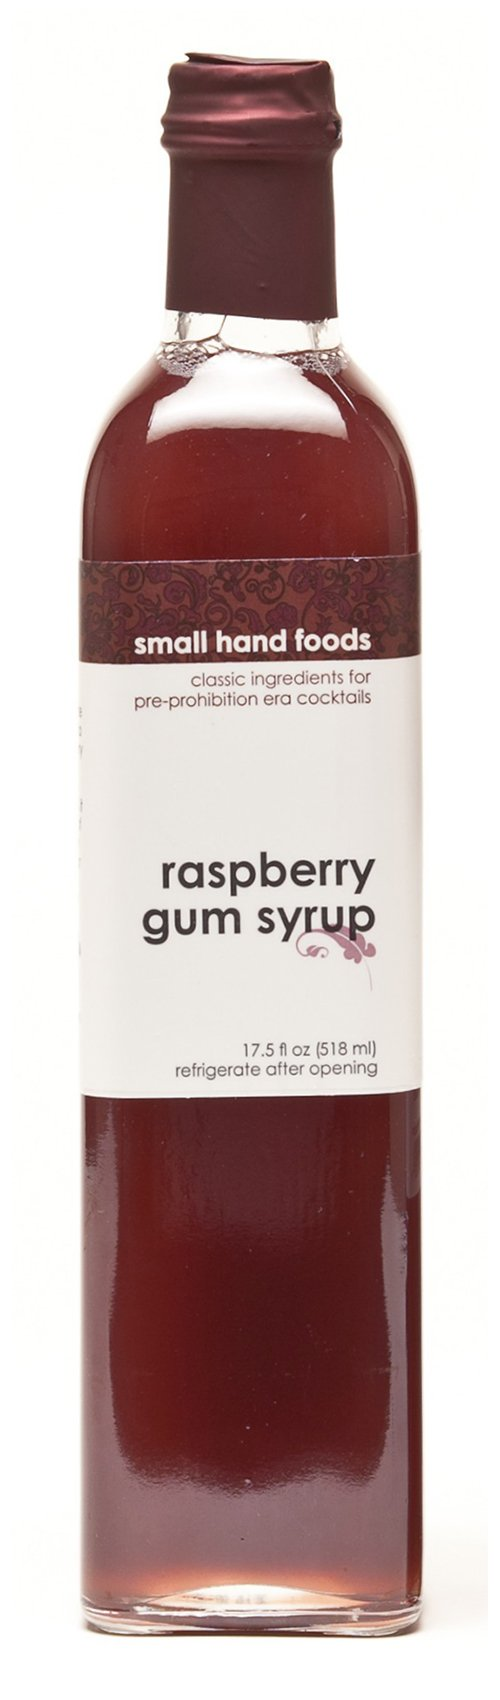 Raspberry Gum Syrup - 17.5 oz by Small Hand Foods